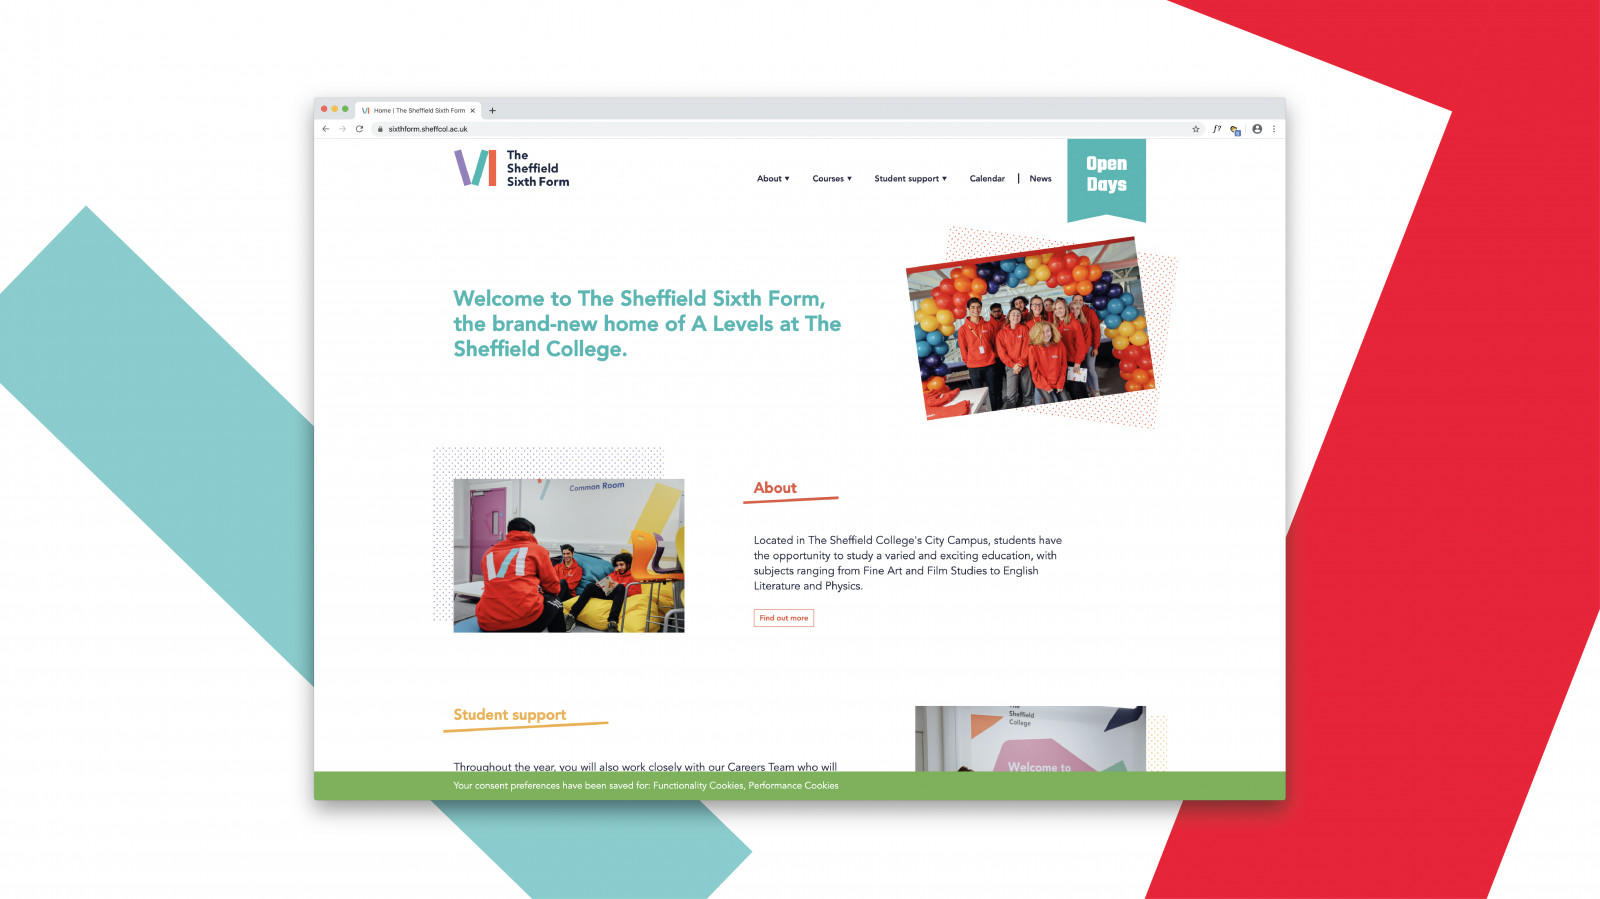 image for Sheffield College 6th Form Brand project